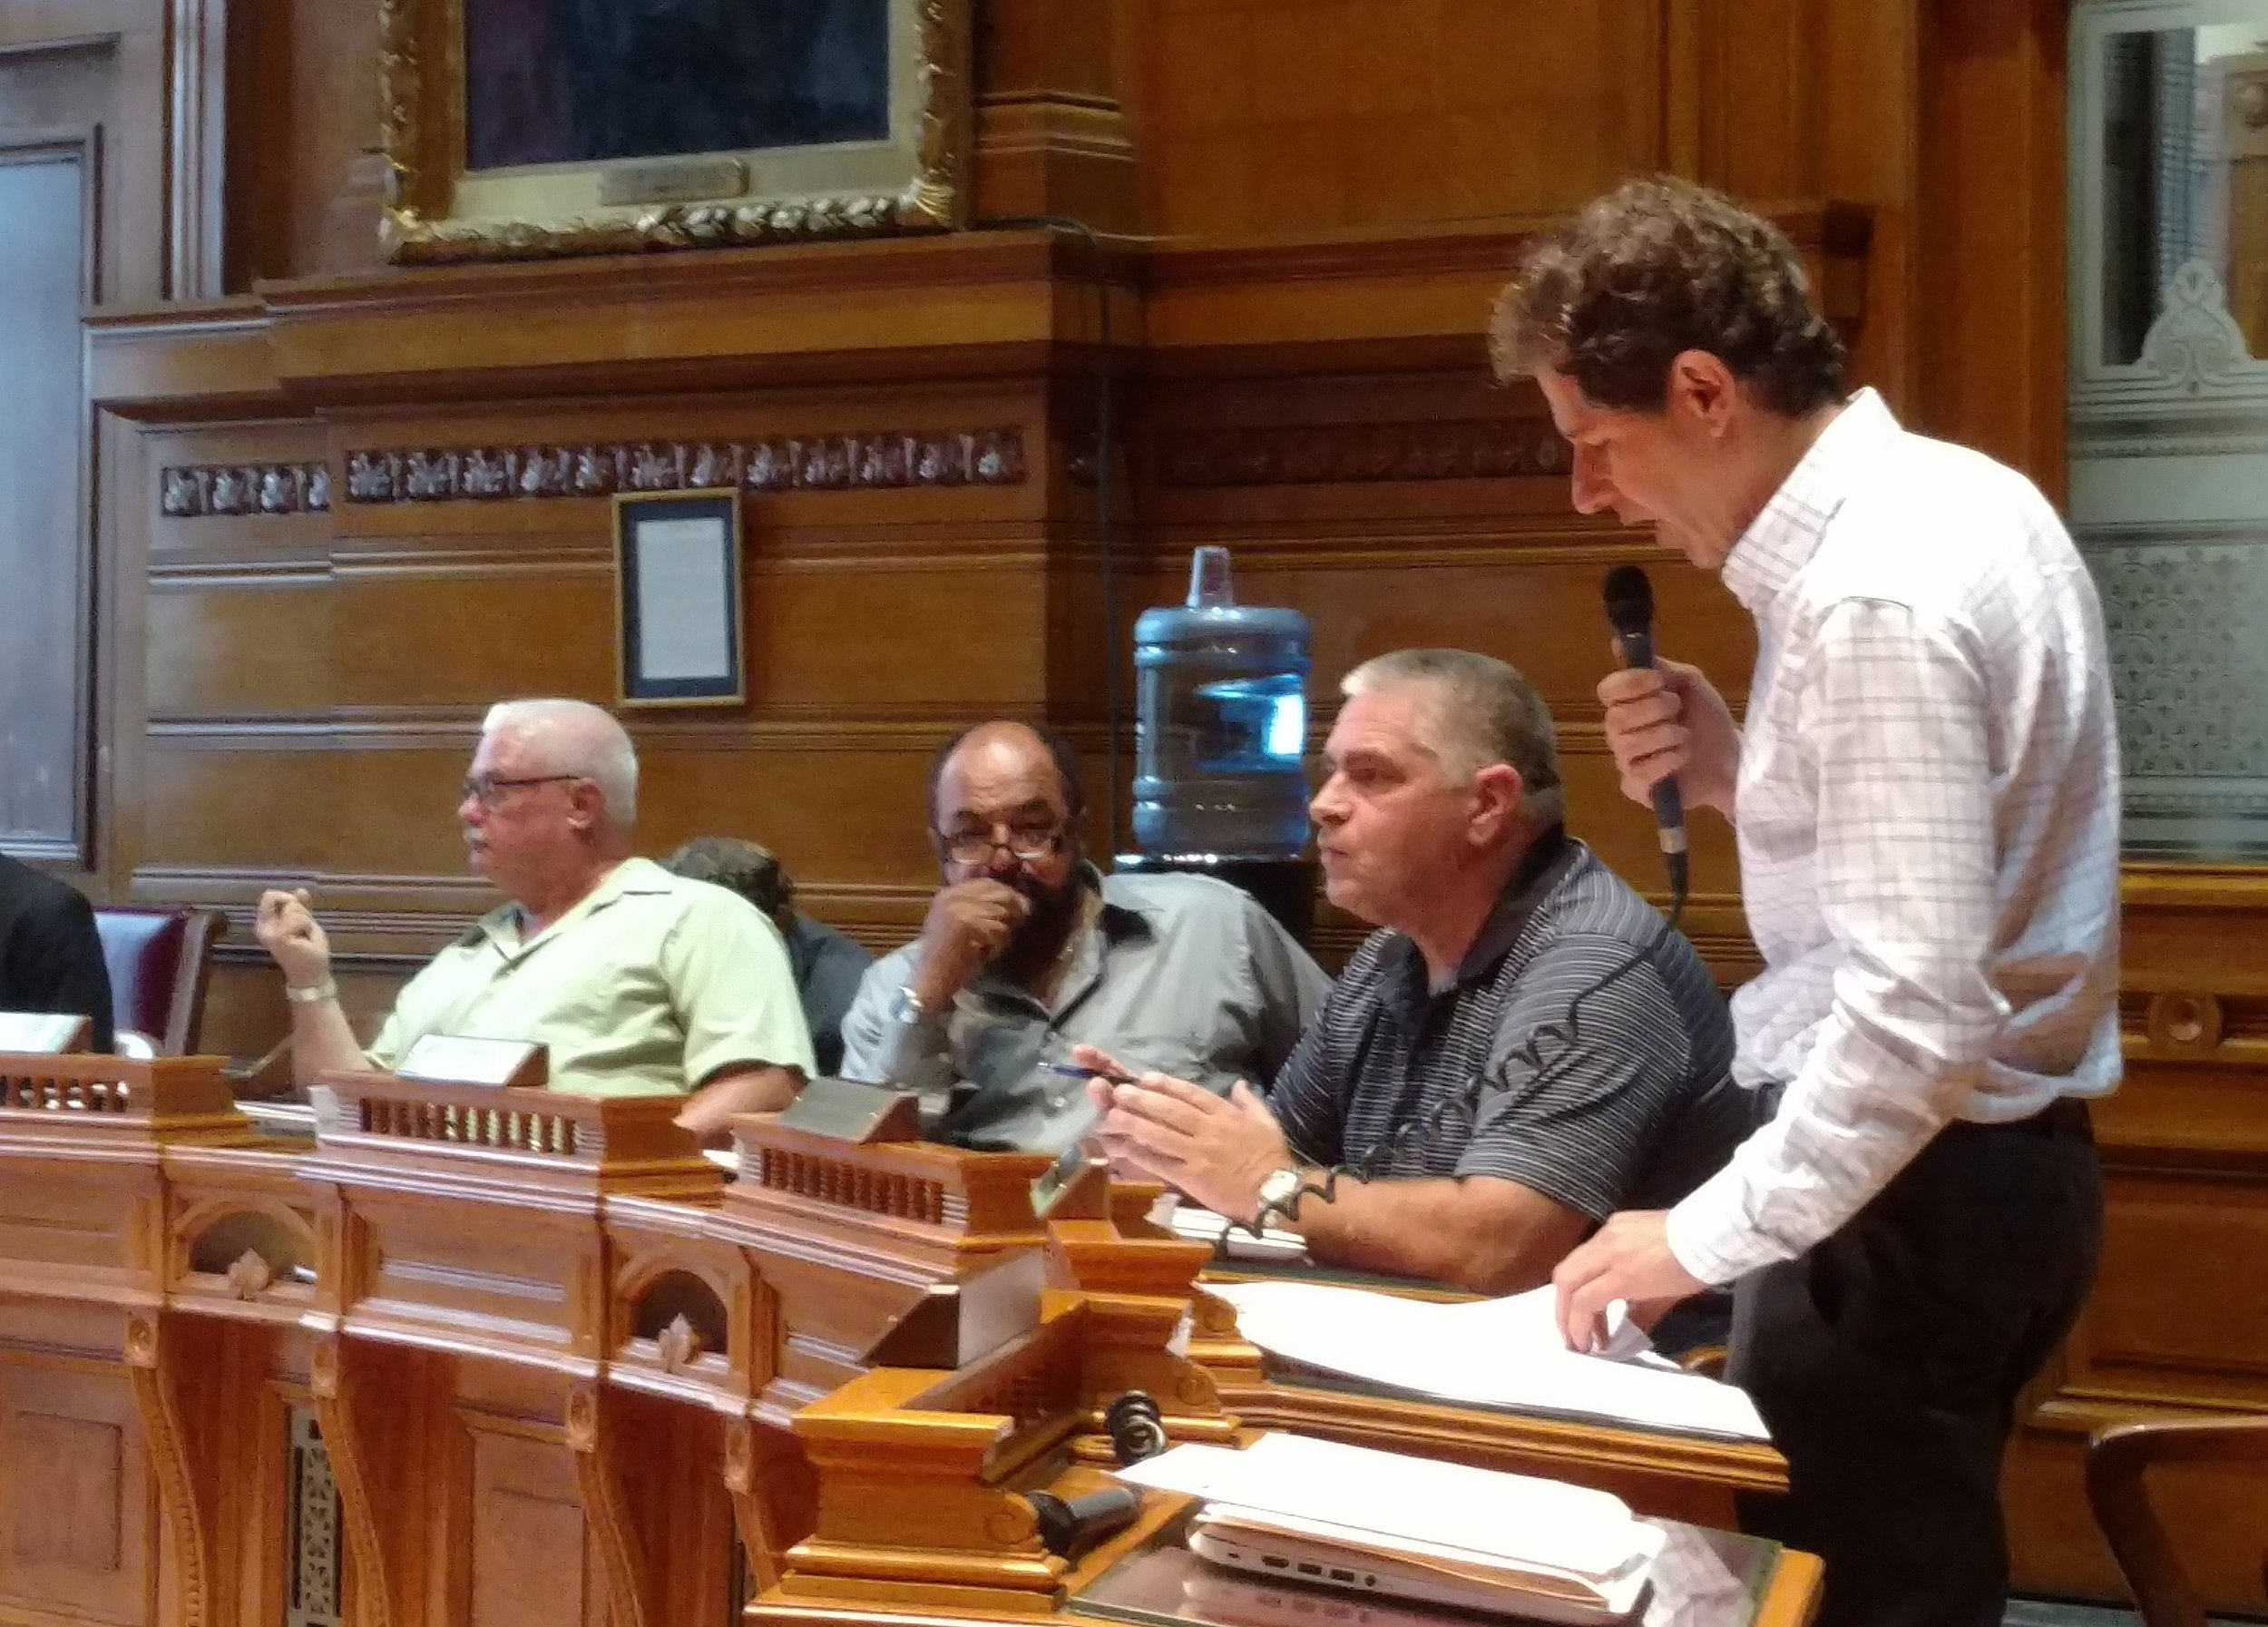 Providence City Council member Seth Yurdin reads his latest resolution to oppose the proposed Burrillville power plant during a special meeting July 24. (Tim Faulkner/ecoRI News)